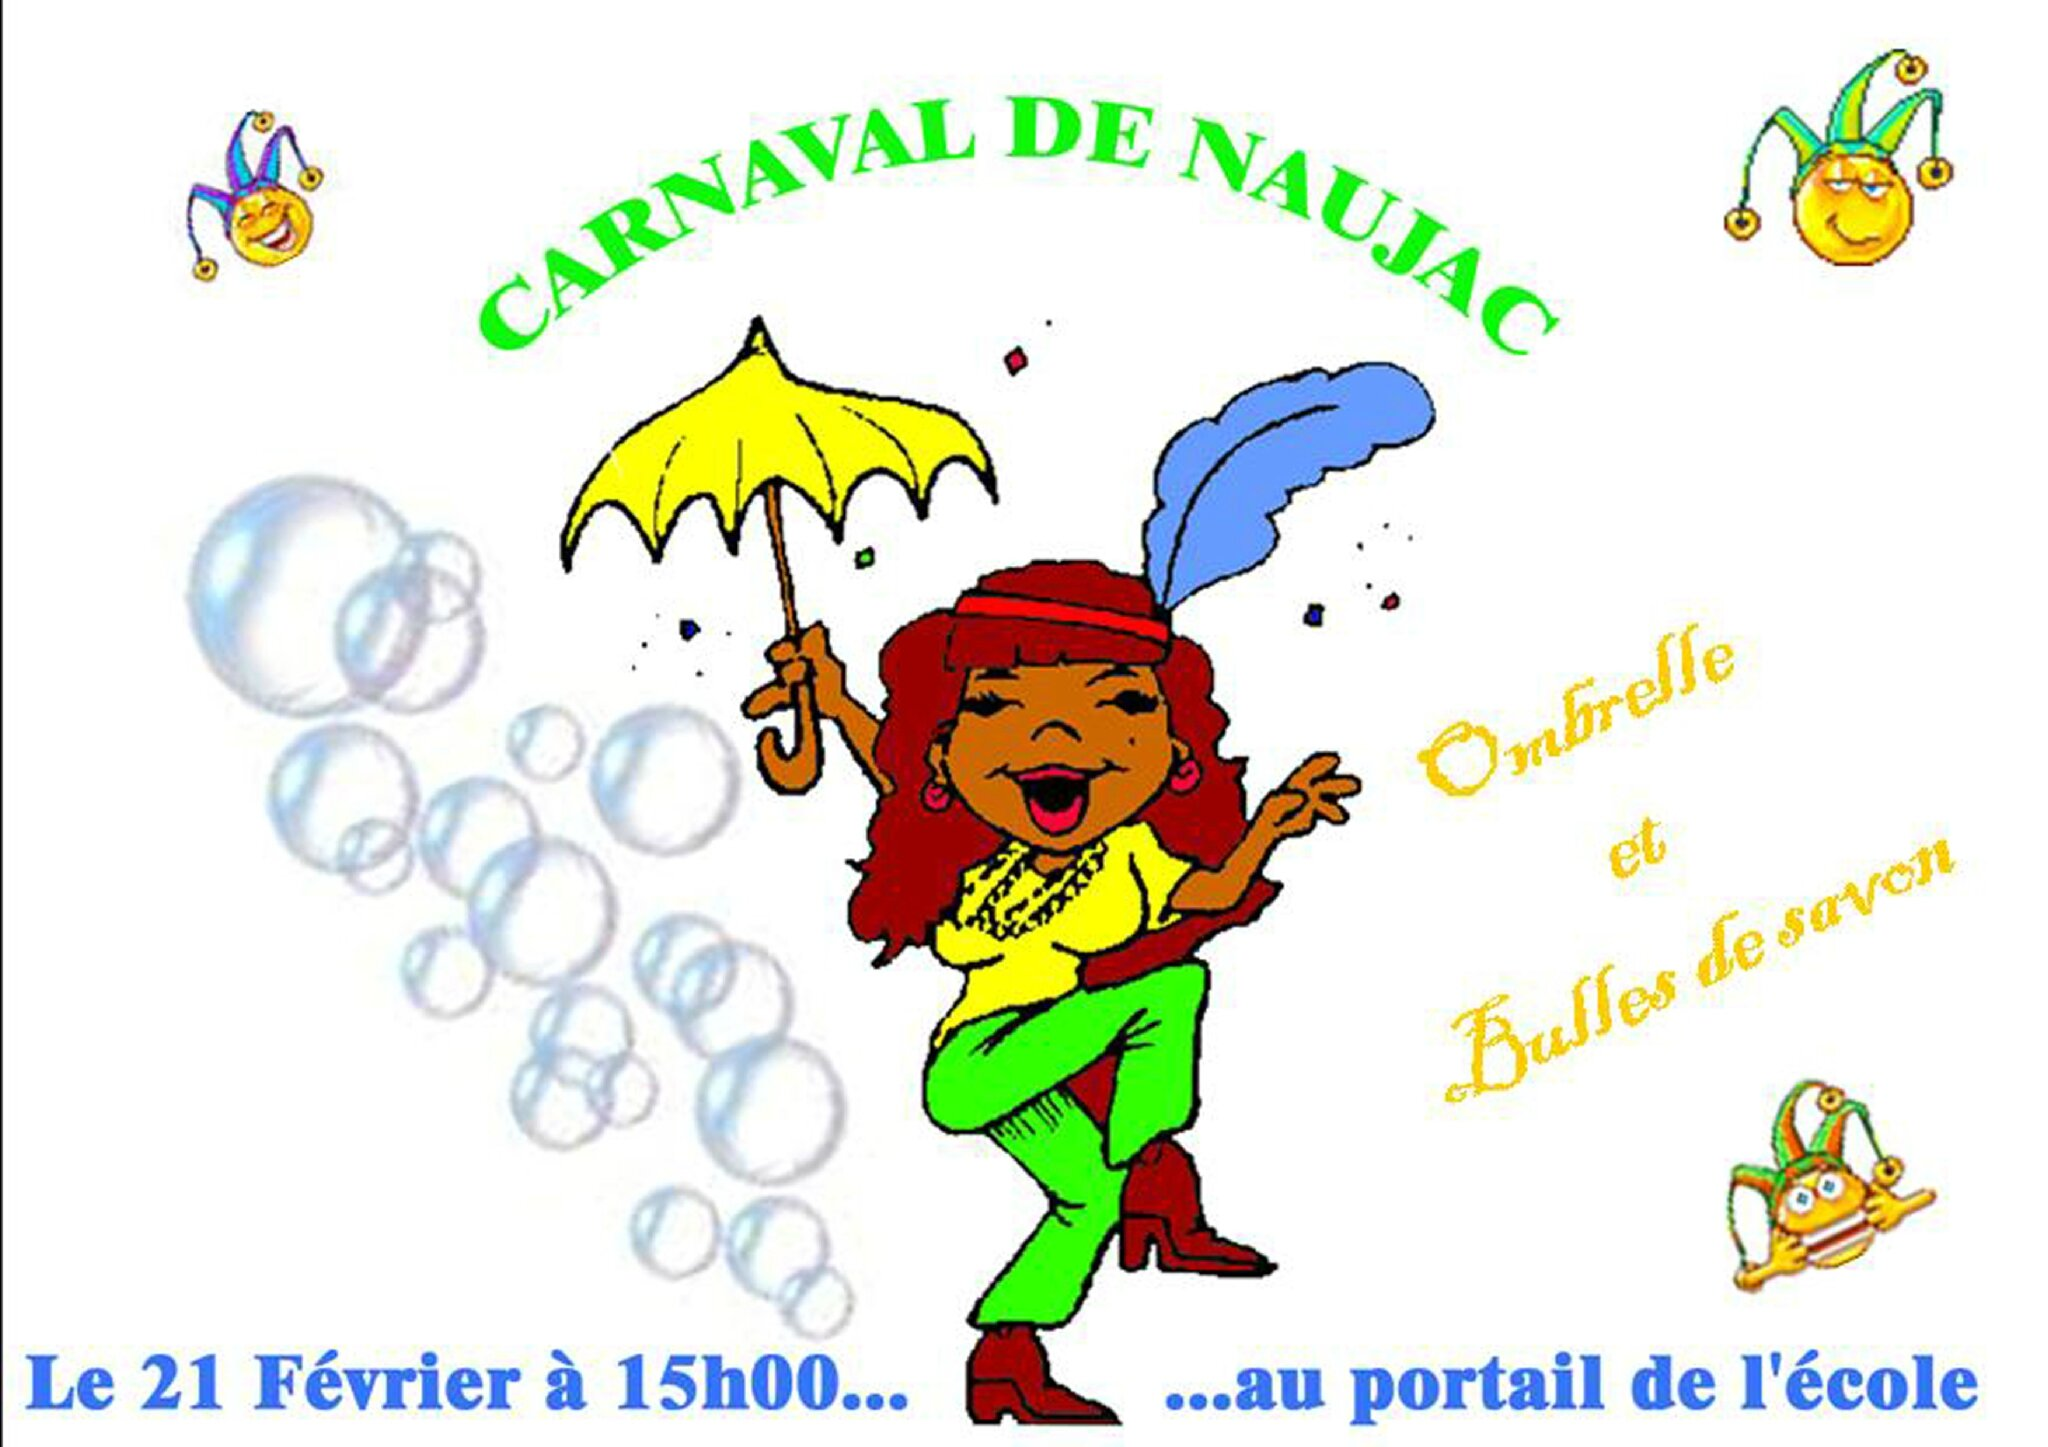 carnaval a naujac mairie de naujac sur mer. Black Bedroom Furniture Sets. Home Design Ideas